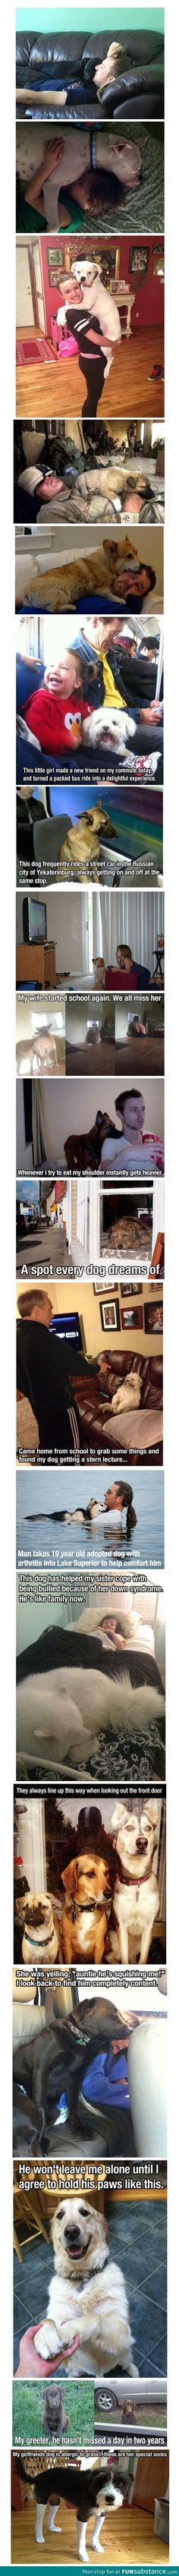 Dogs truly are man's best friend